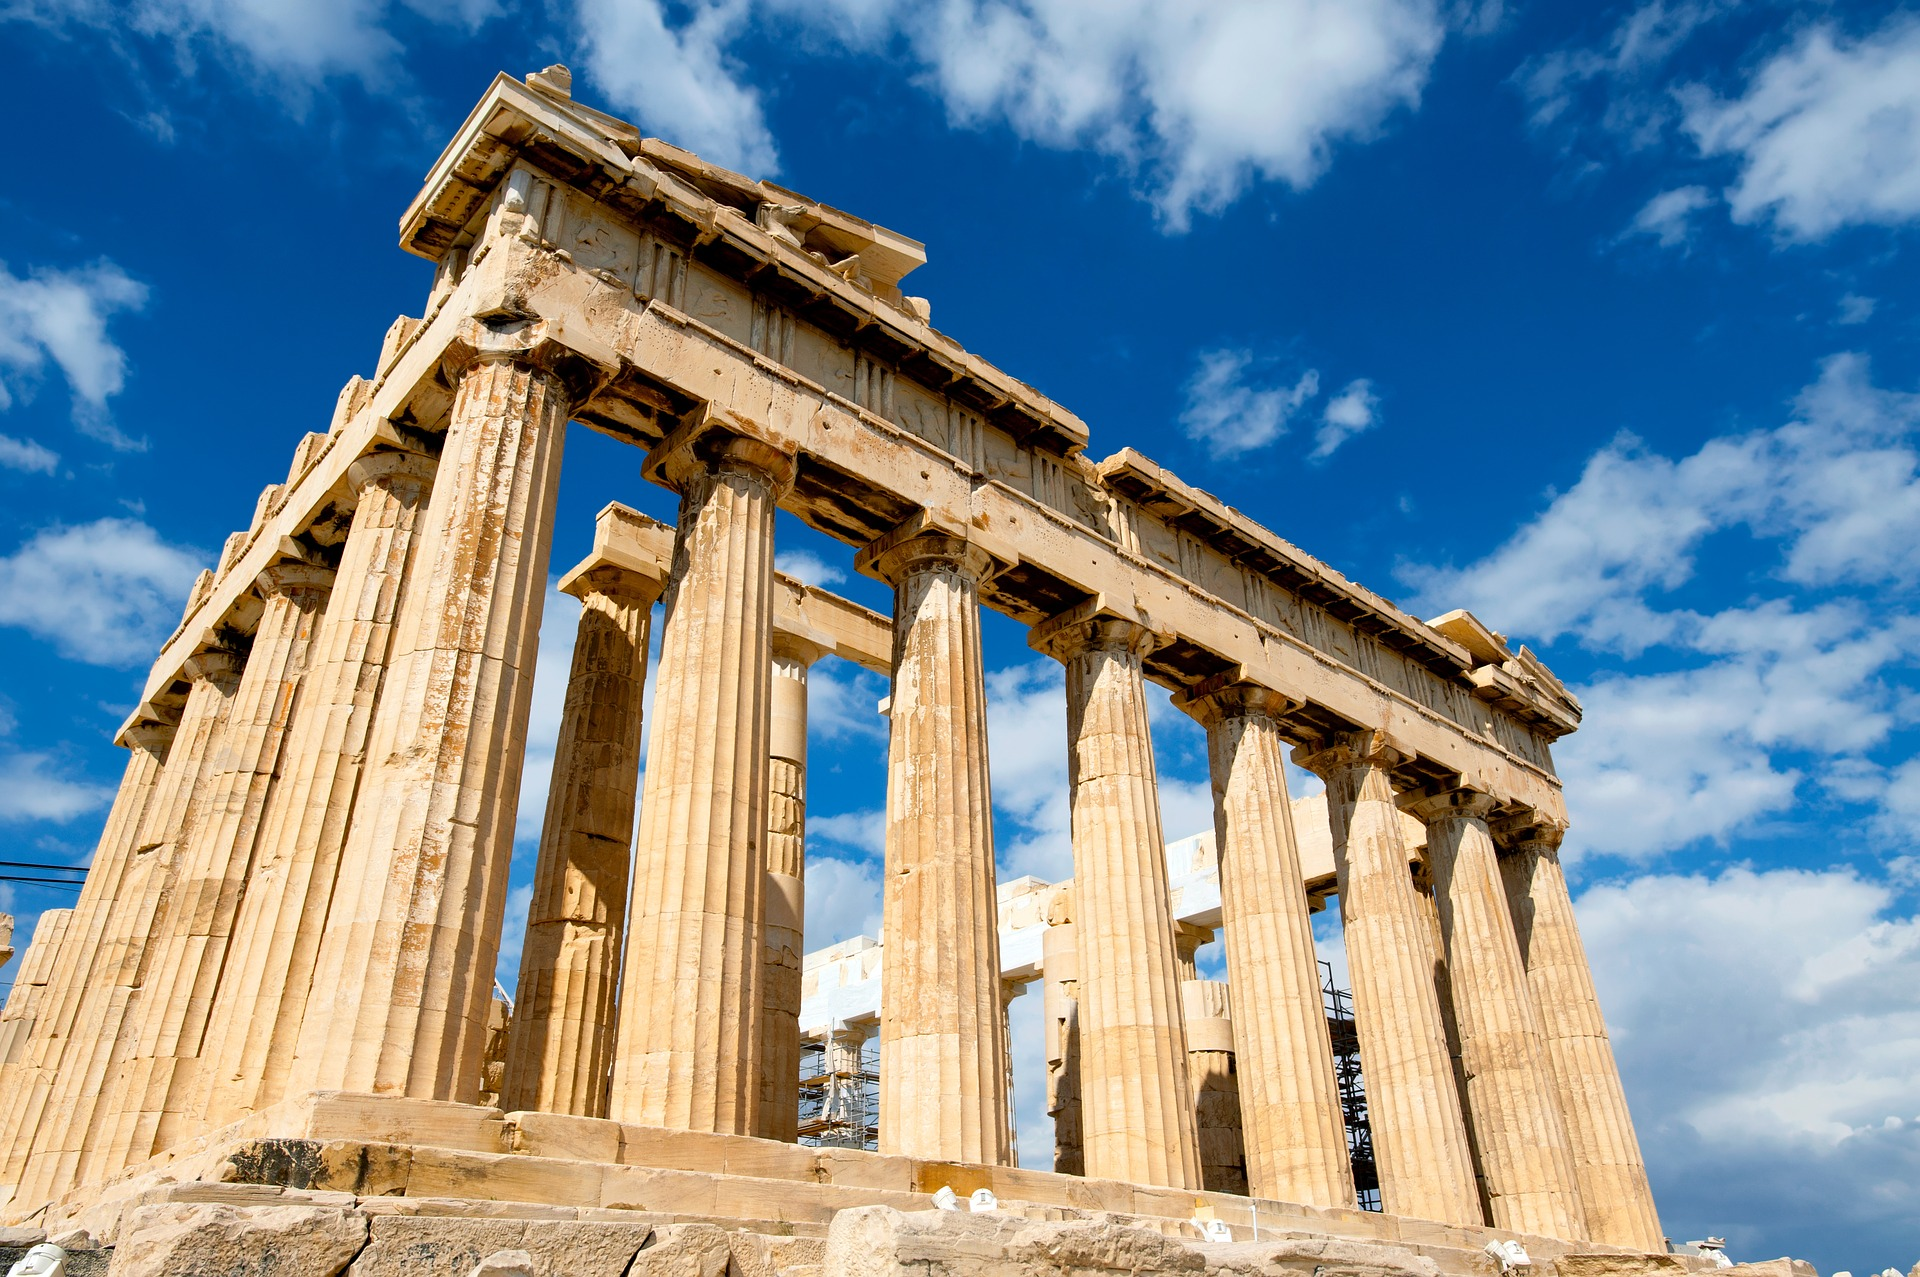 Is Greece Cracking Down on Tax Evasion or Taxing Anonymity? - CoinDesk